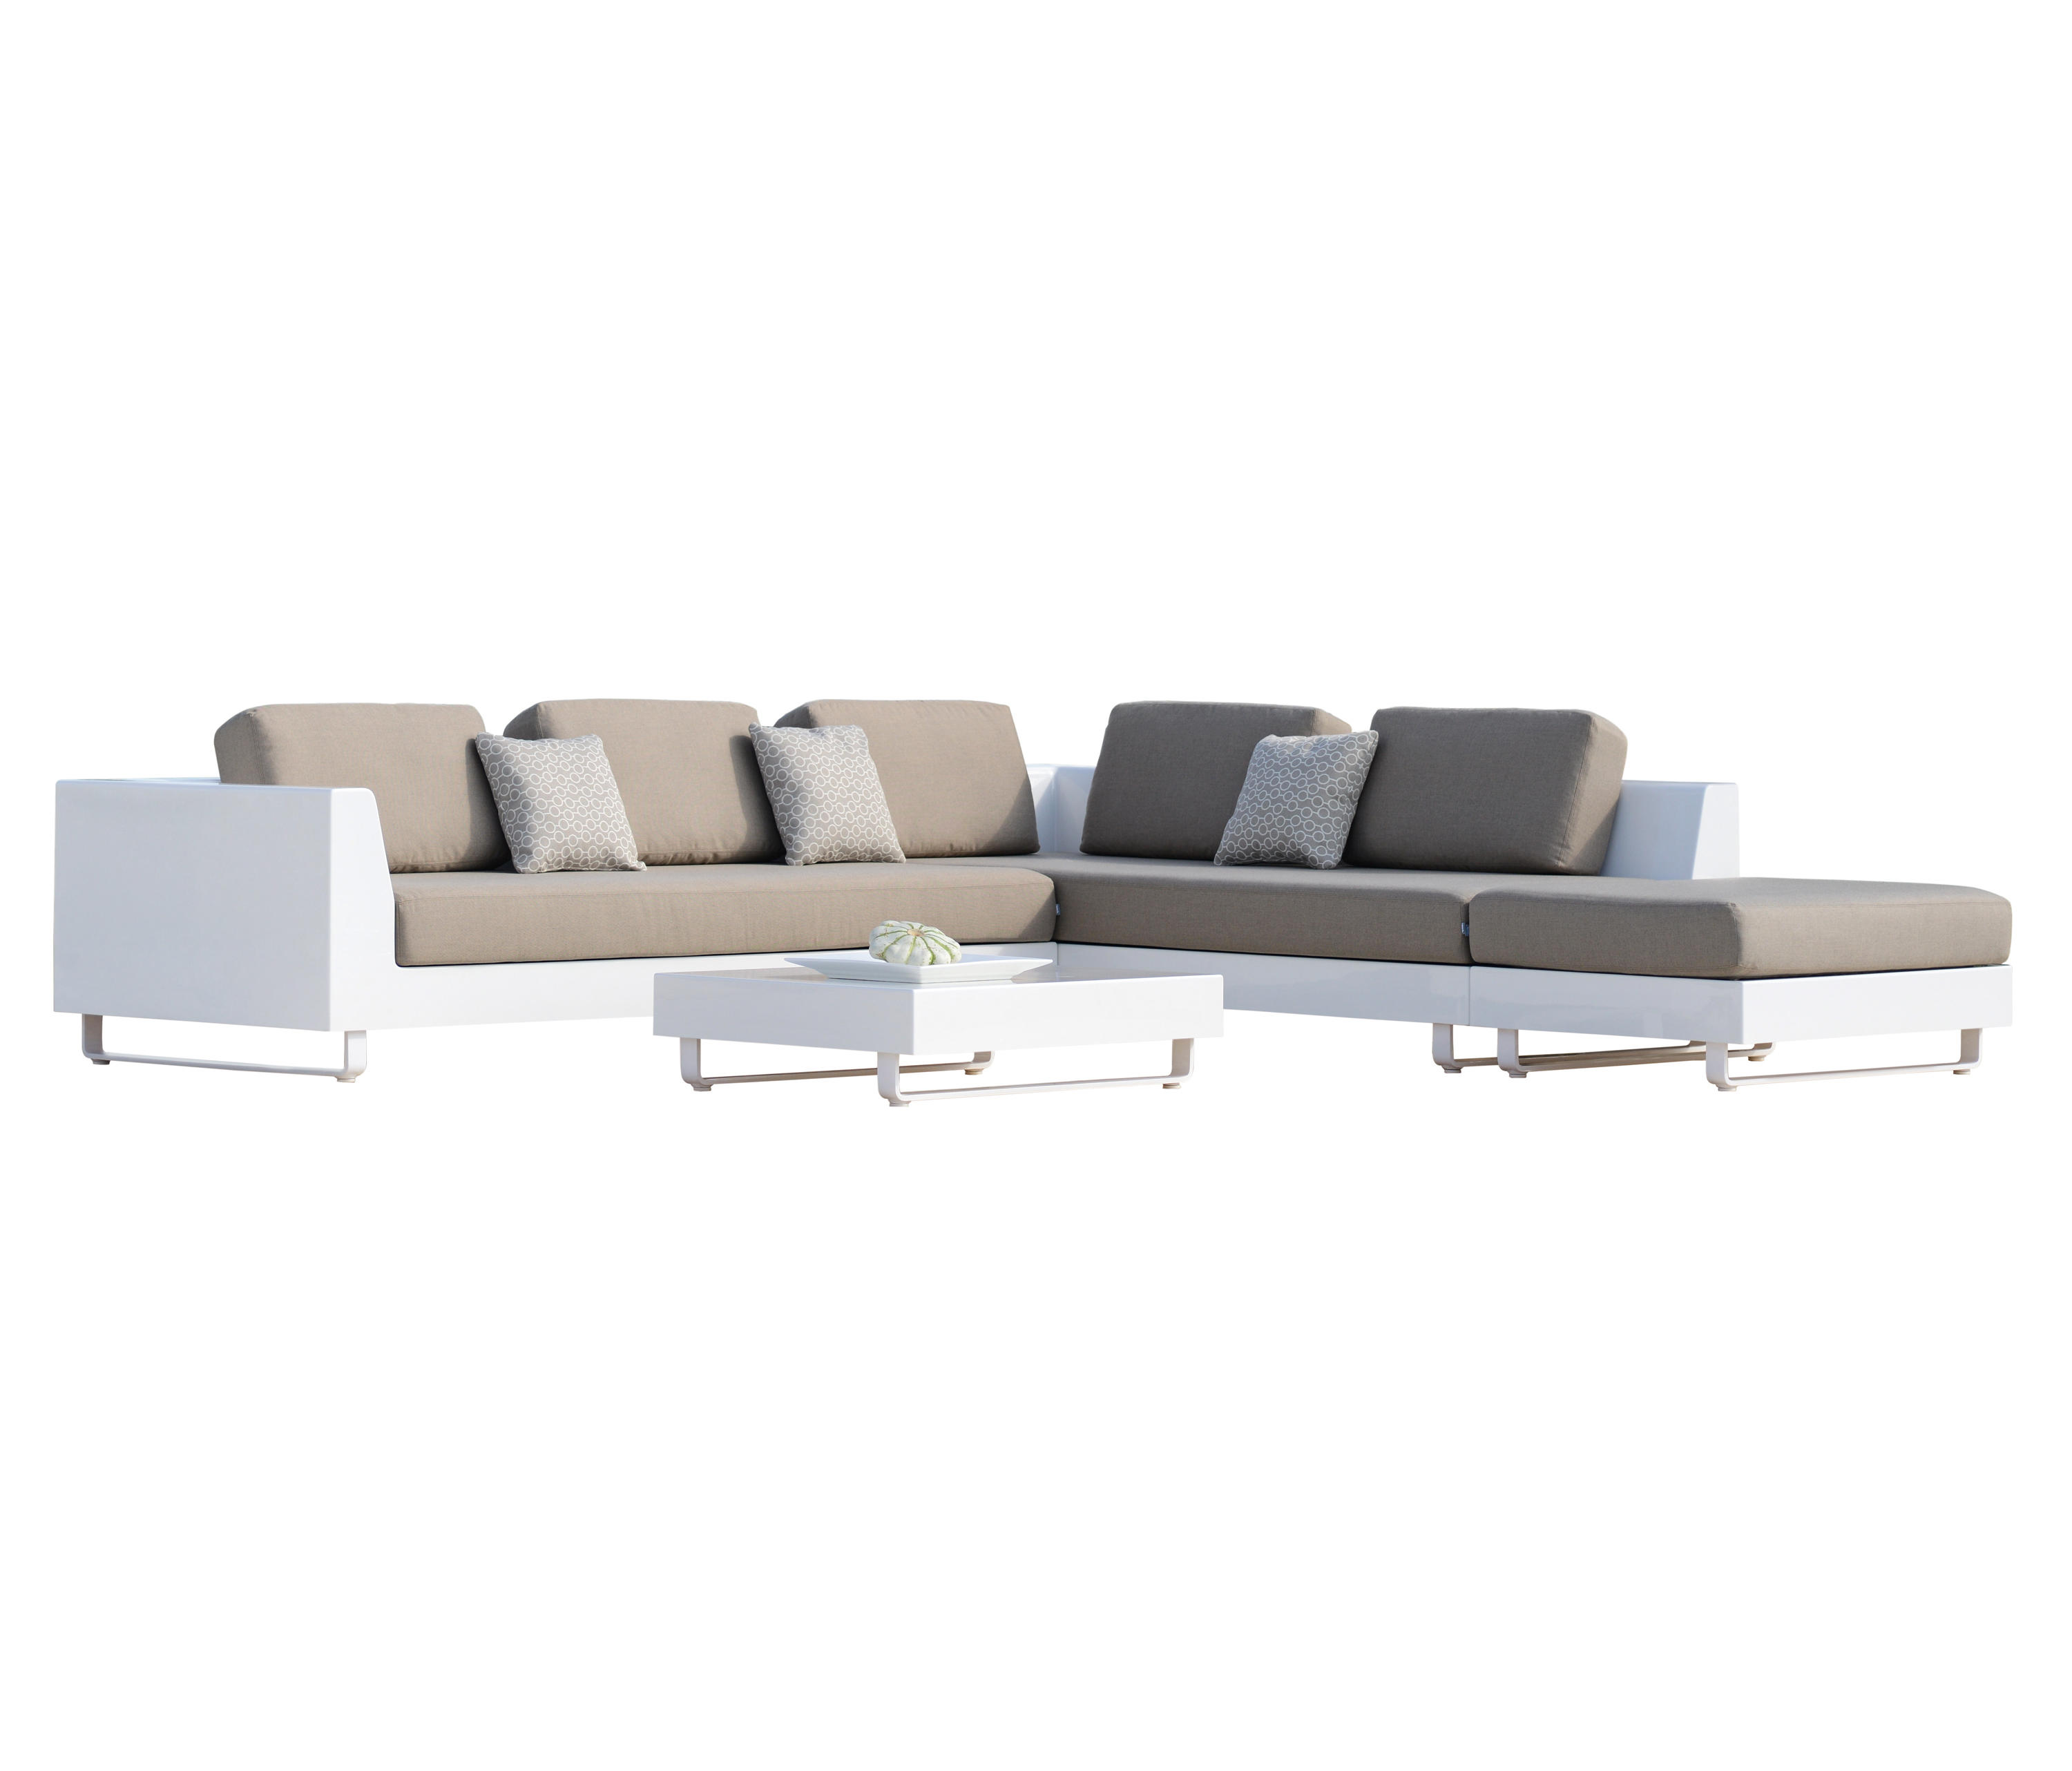 luxury combination garden sofas from rausch classics. Black Bedroom Furniture Sets. Home Design Ideas